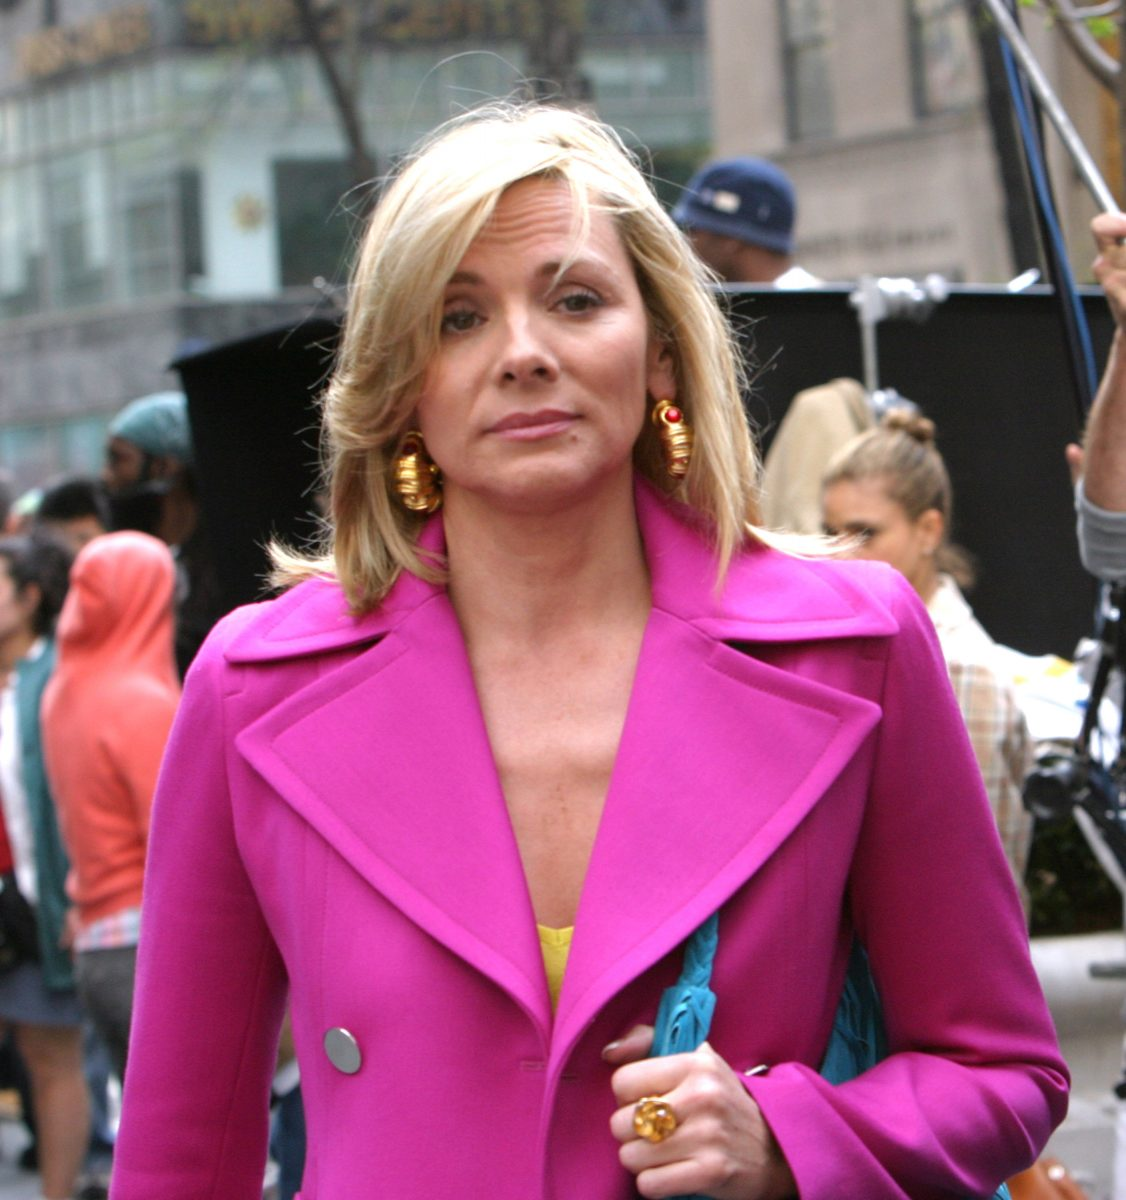 Kim Cattrall on location for 'Sex and the City'